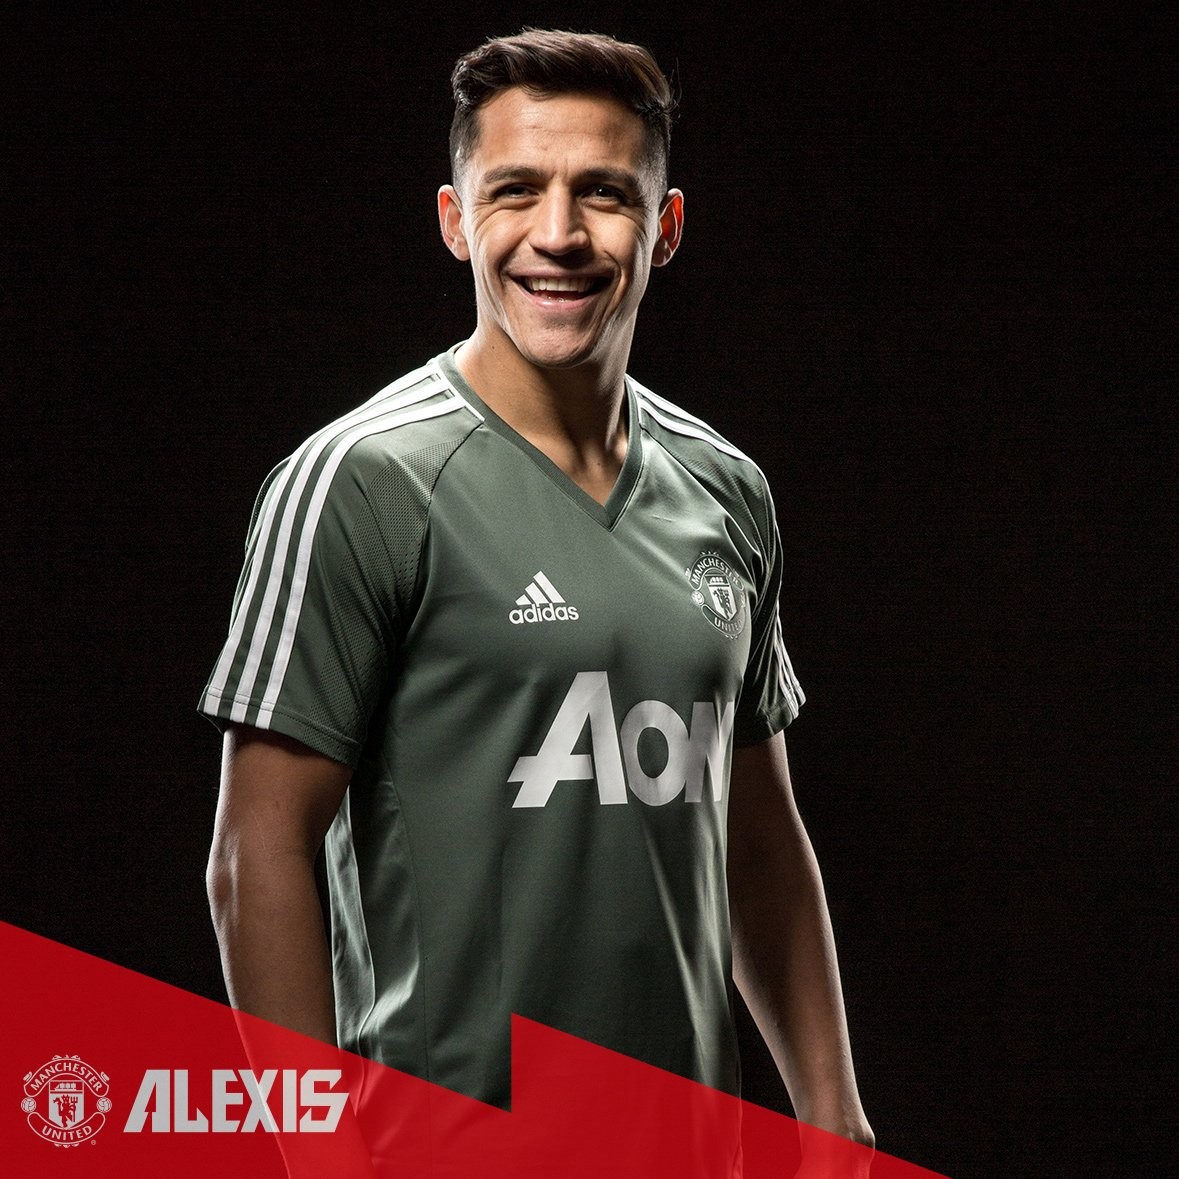 RT @ManUtd: A natural on the pitch AND in front of the cameras! 📸#Alexis7 https://t.co/xRprFt6YAQ